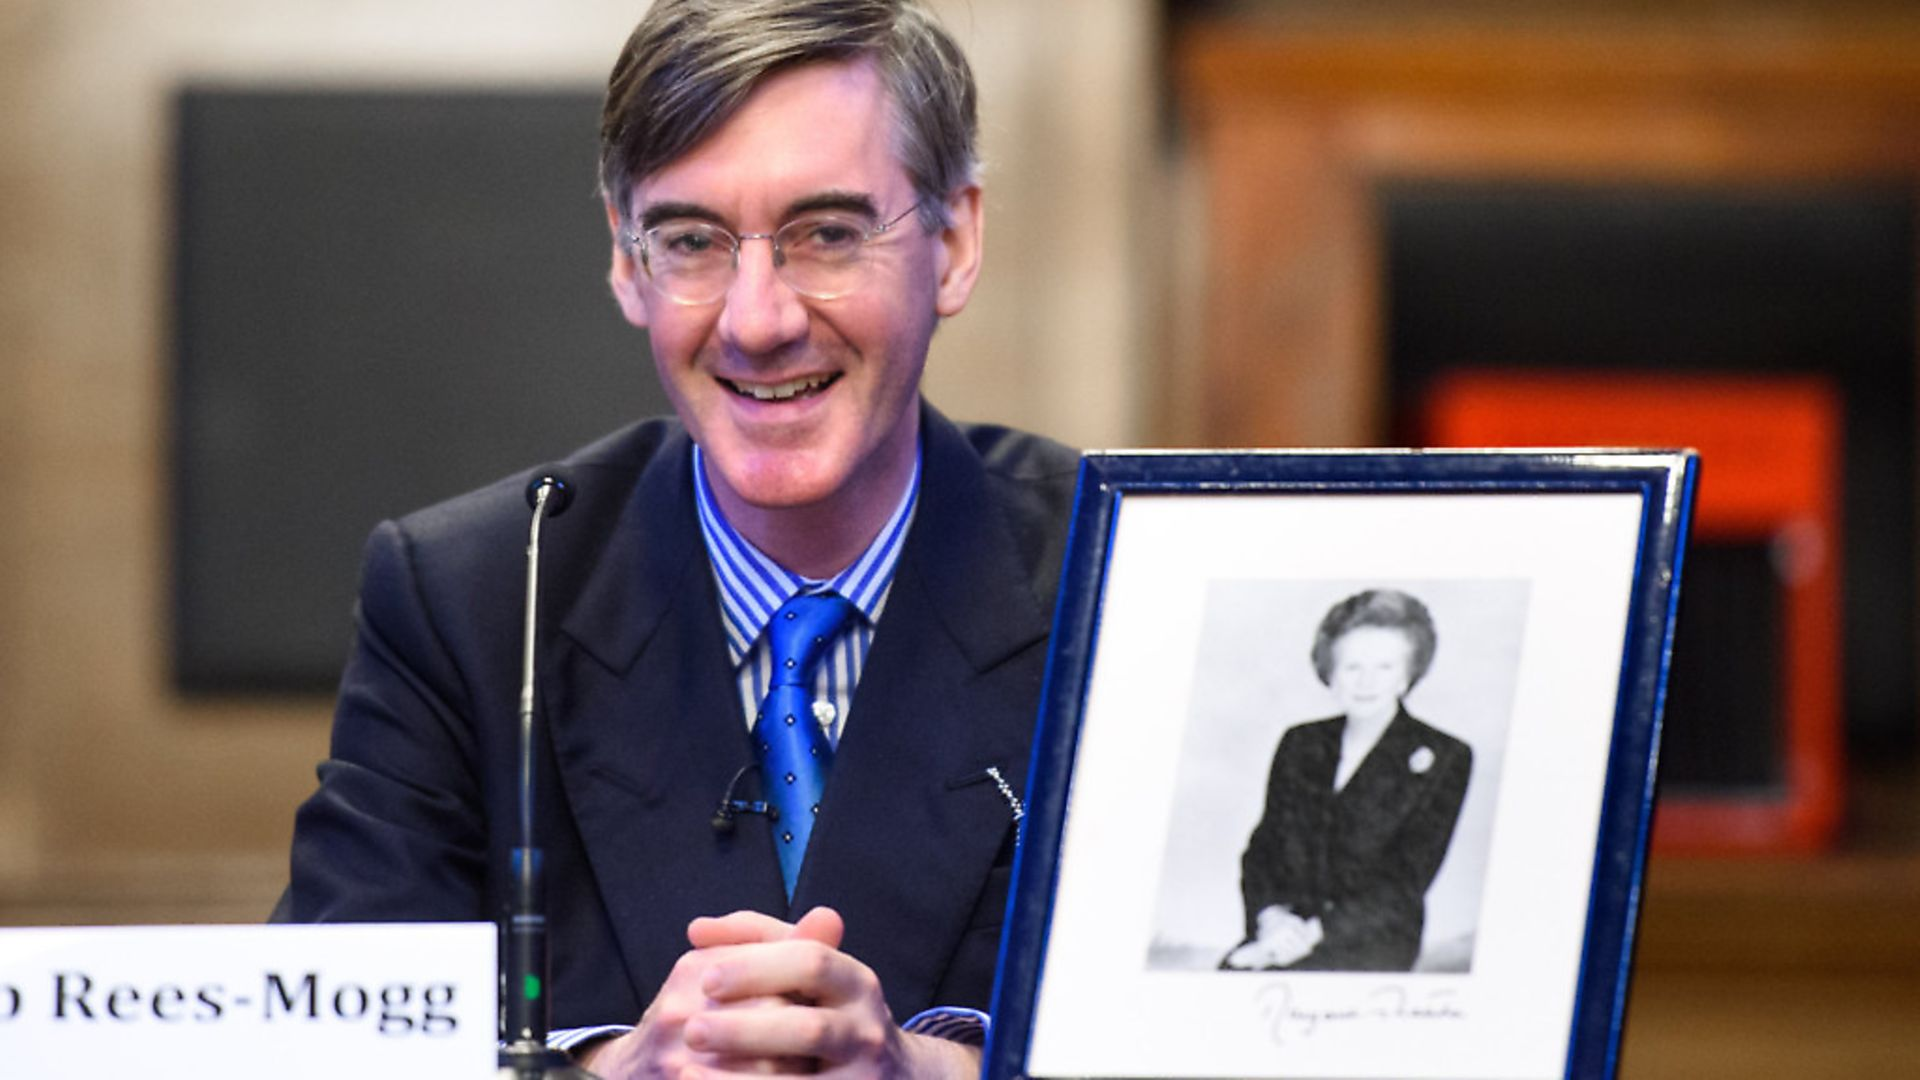 Jacob Rees-Mogg pictured at a fringe meeting at Manchester Town Hall, called 'Brexit with Jacob Rees-Mogg', held by the Bruges Group as part of the Conservative Party Conference in Manchester. Picture date: 2 October, 2017. Photo credit should read: Matt Crossick/ EMPICS Entertainment. - Credit: Empics Entertainment